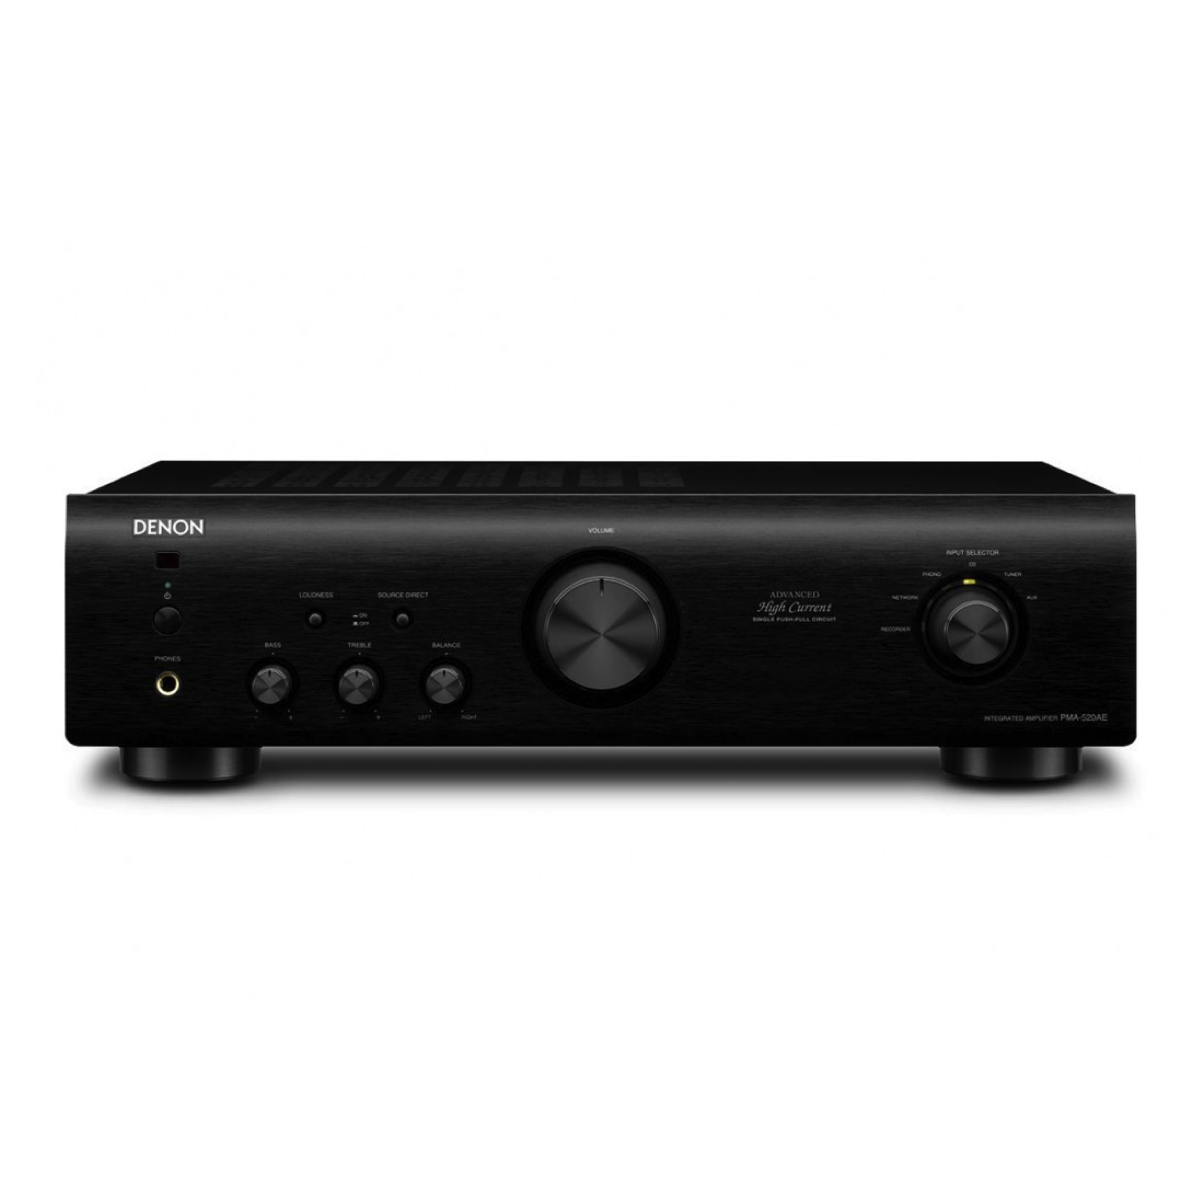 Denon PMA-520AE - Integrated Amplifier, Denon, Integrated Amplifier - Auratech LLC